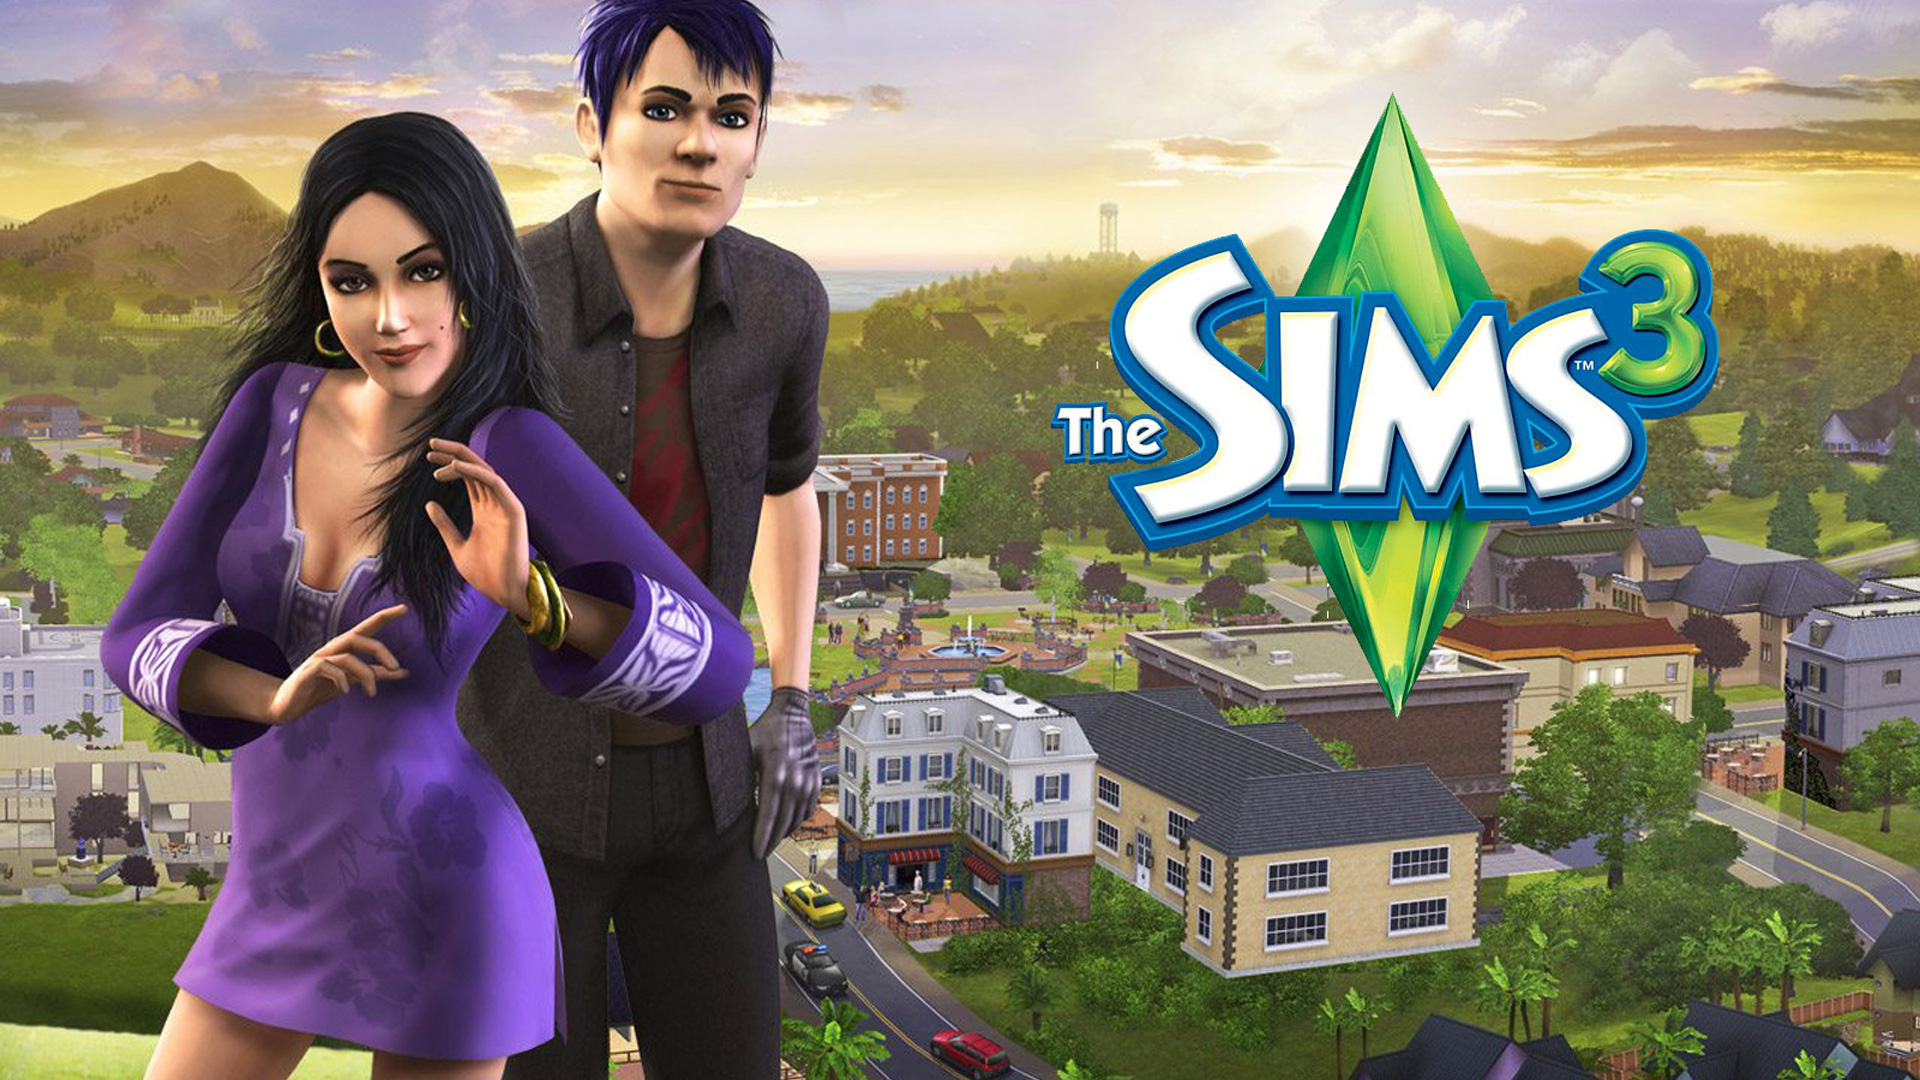 Goth sims 2 content sex objects erotica videos